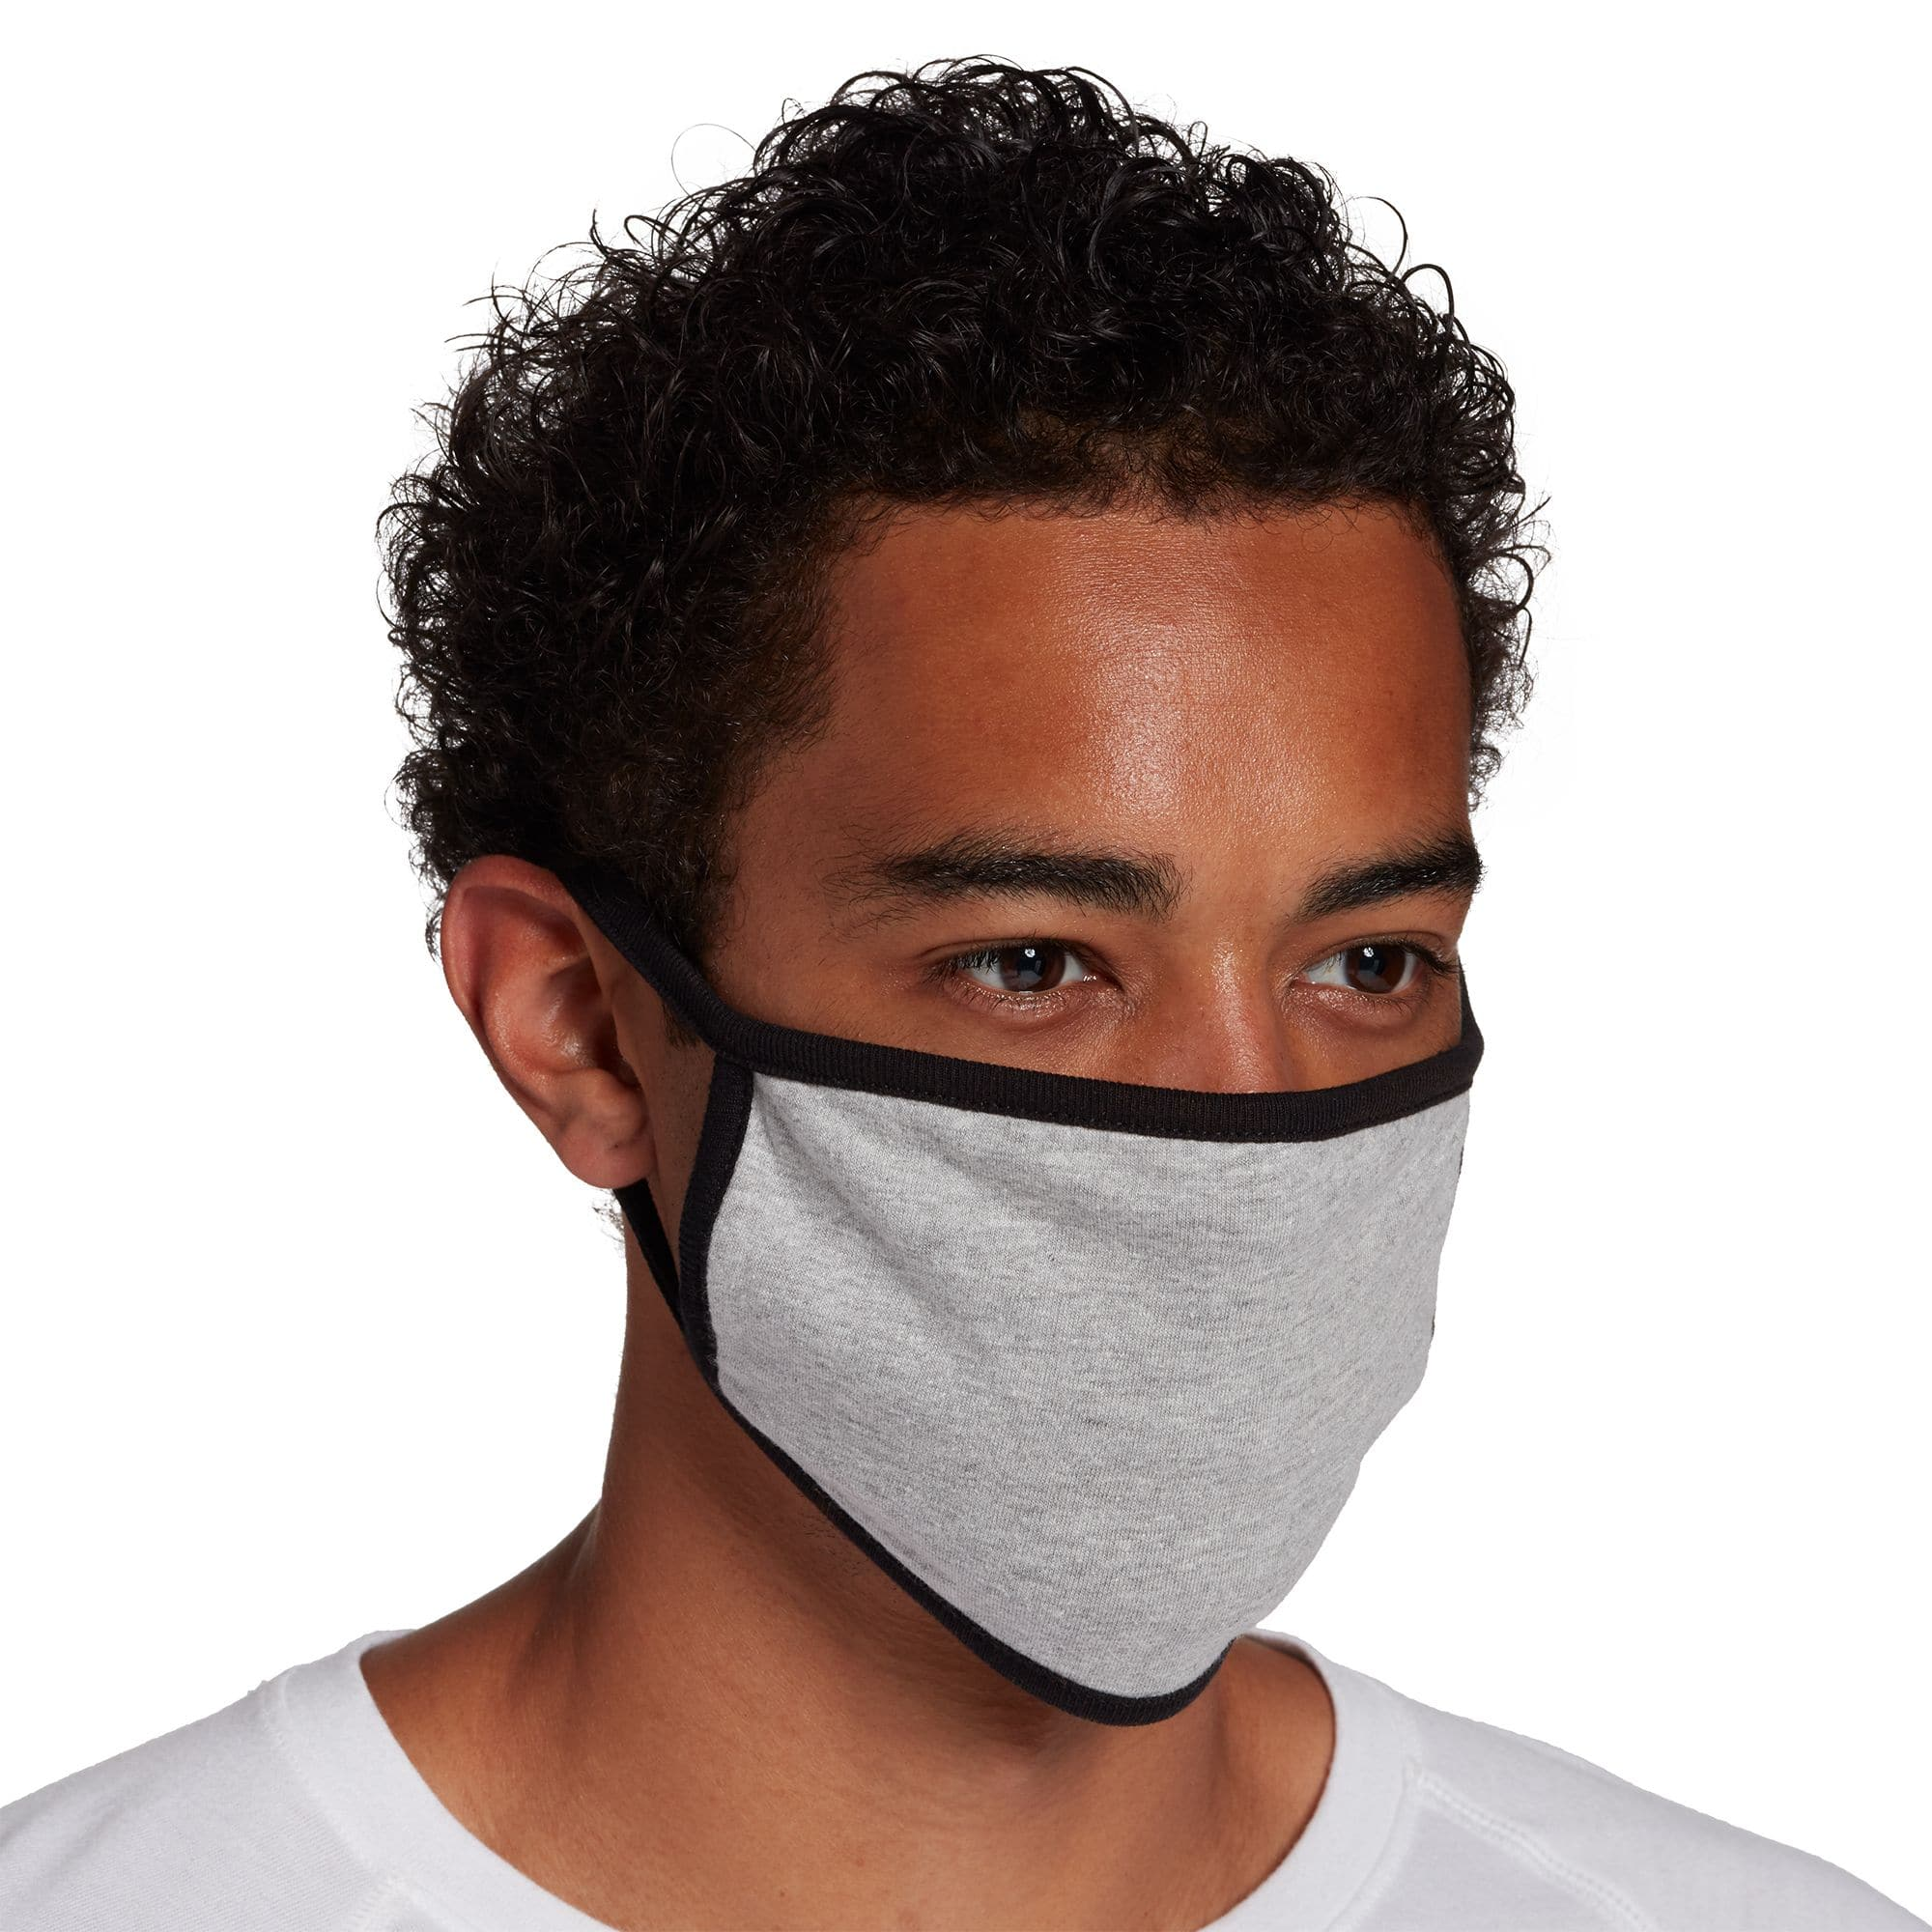 3-Pack (Adult or Youth) Double Ply 100% Cotton Face Masks $10 ($3.33 each) + Free Curbside Pickup at Dicks Sporting Goods